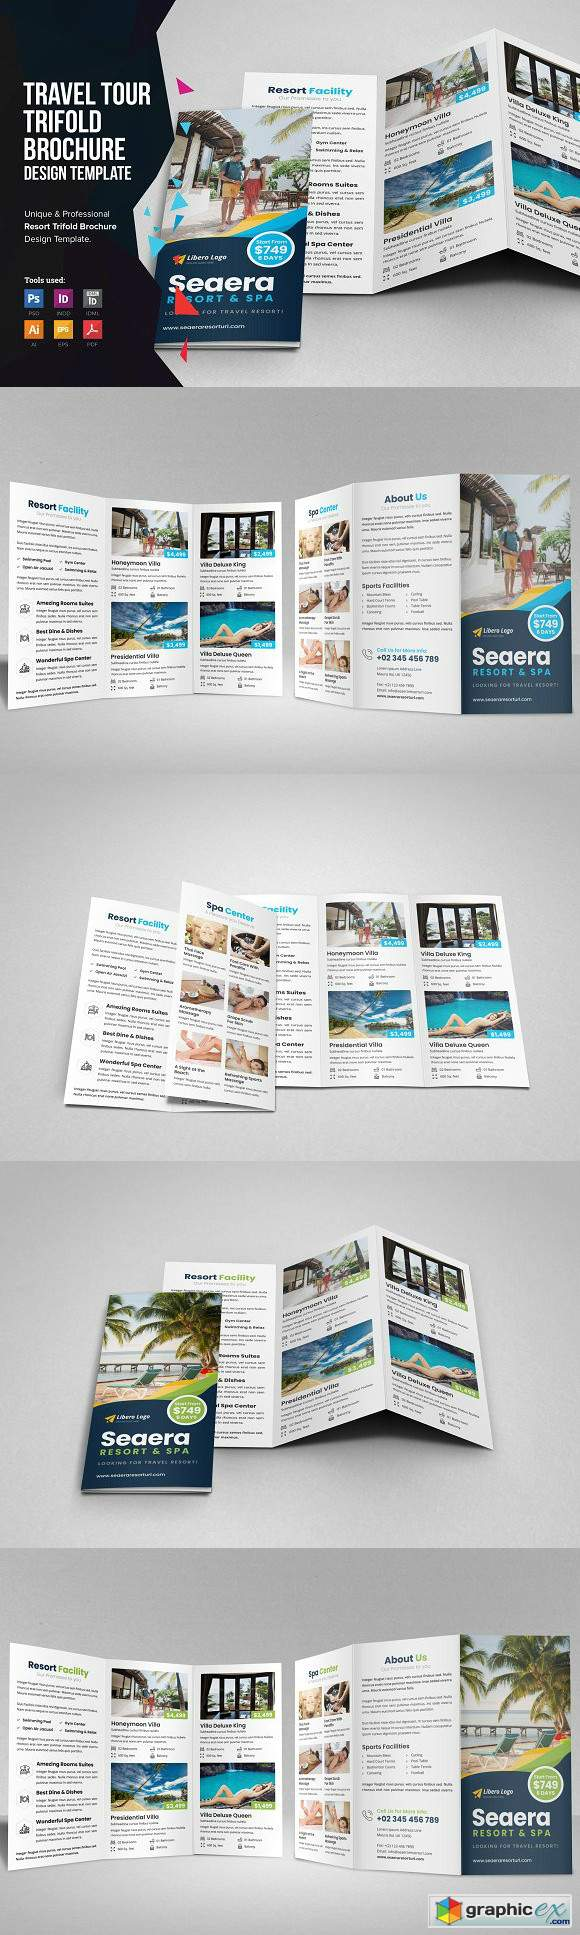 Travel Resort Trifold Brochure v2